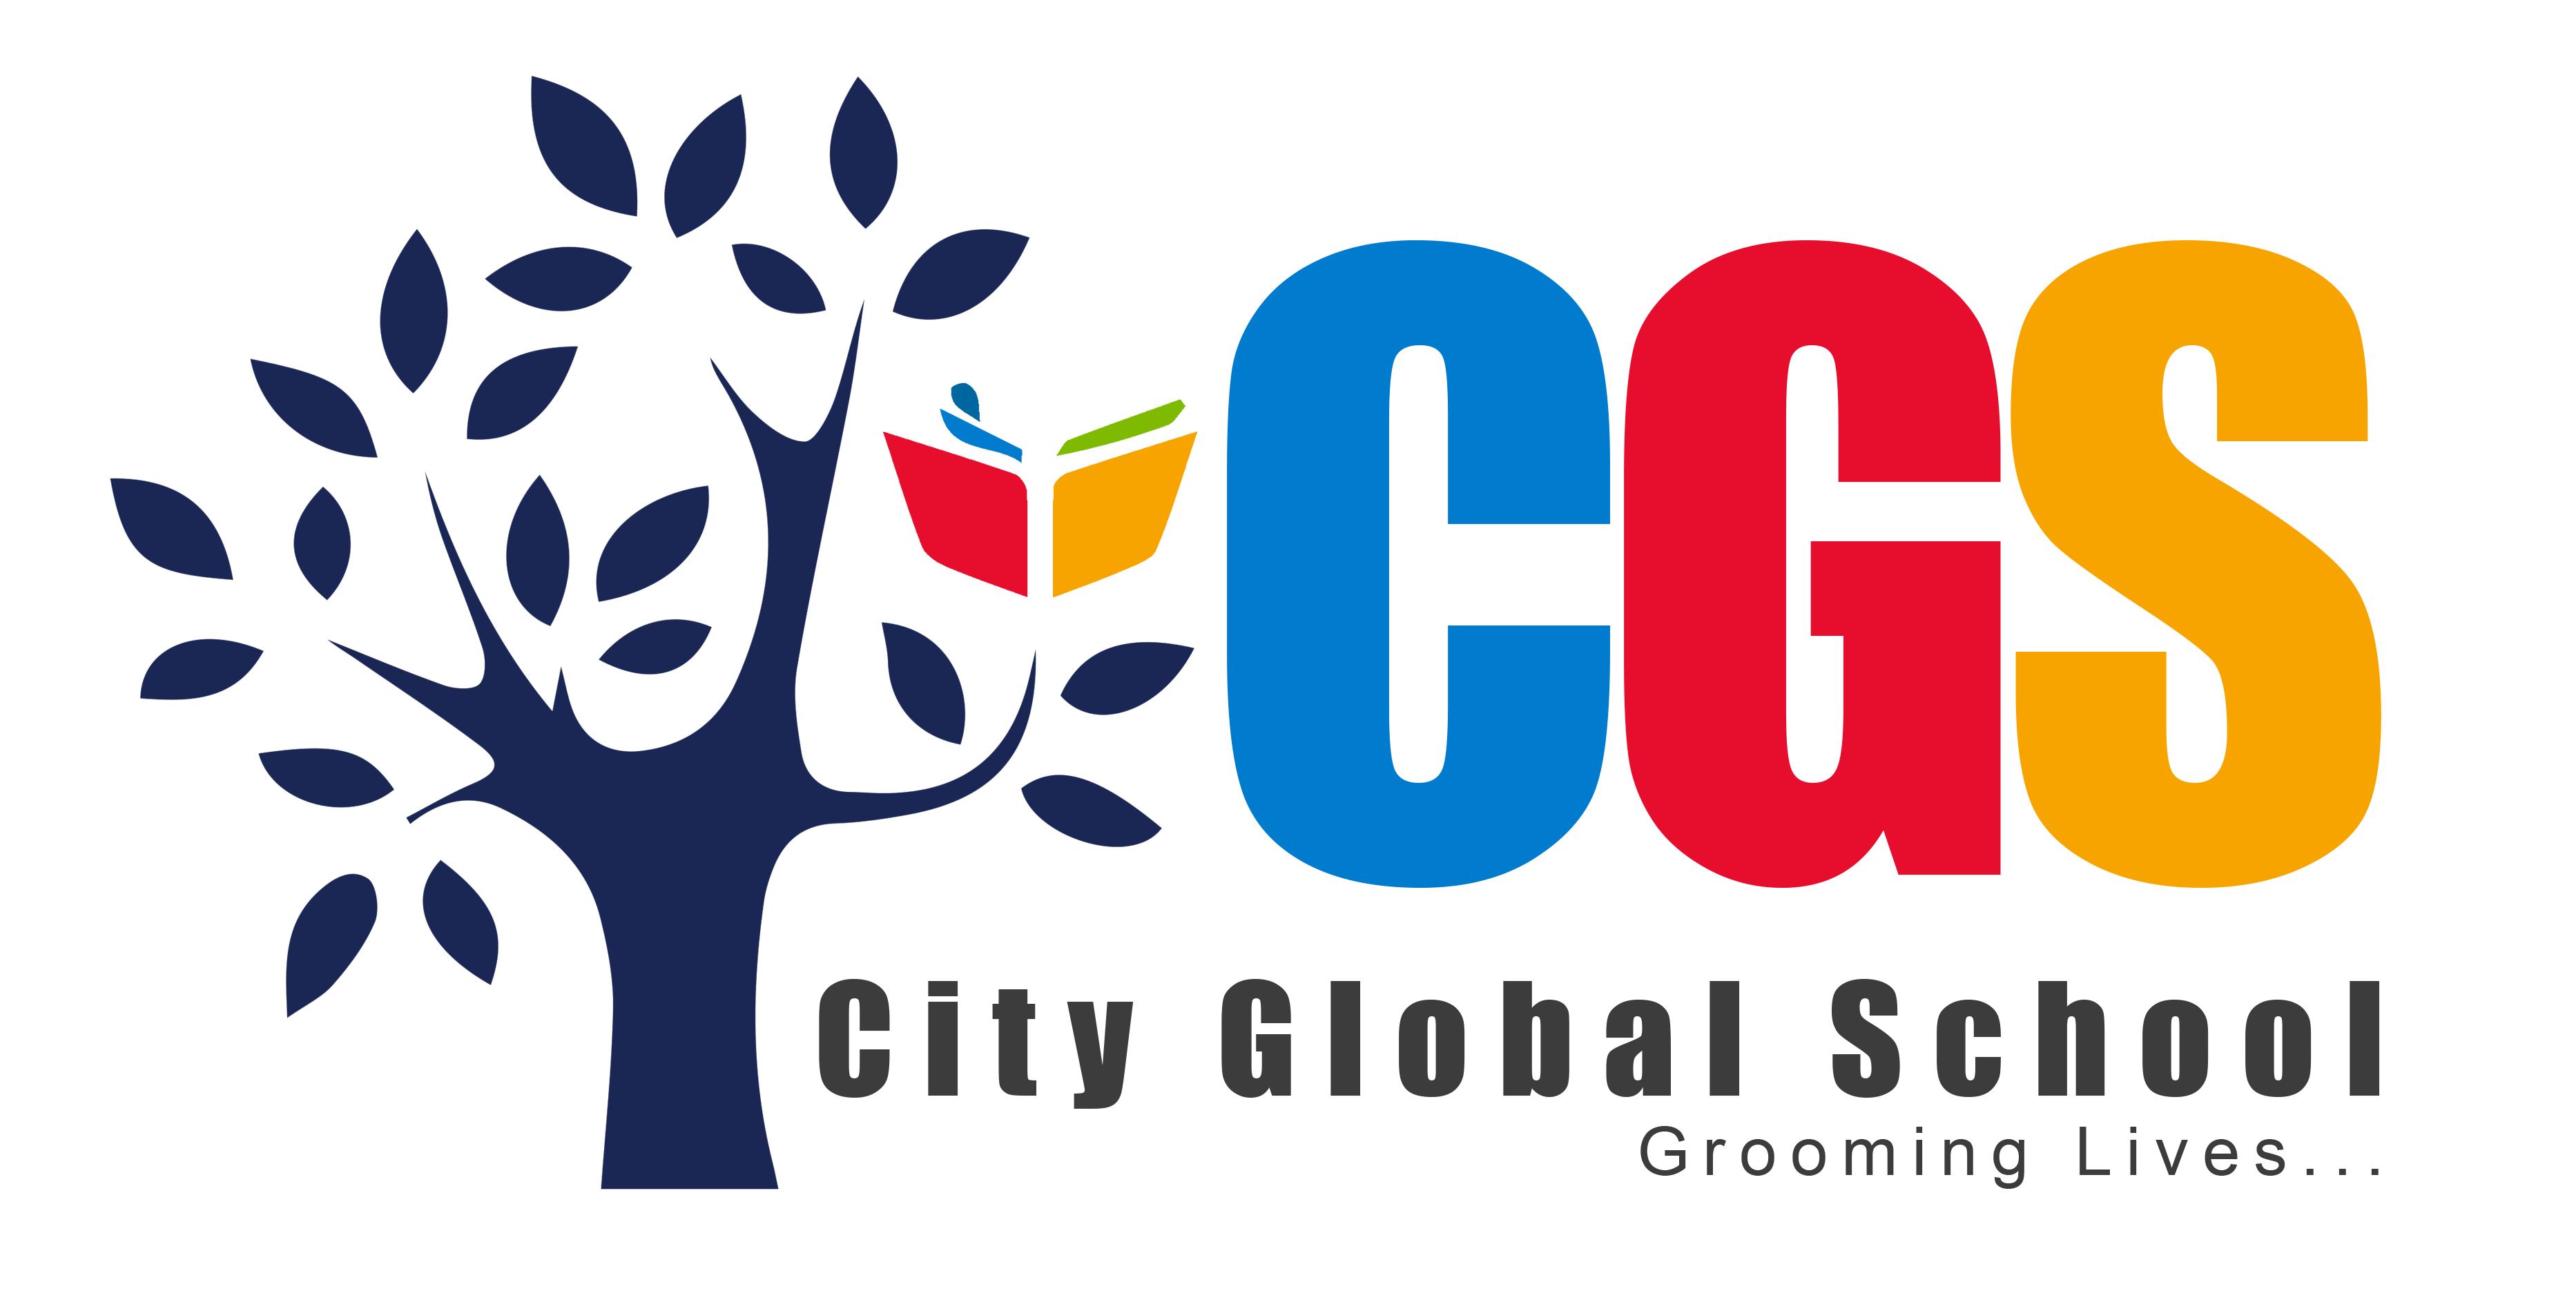 City Global School